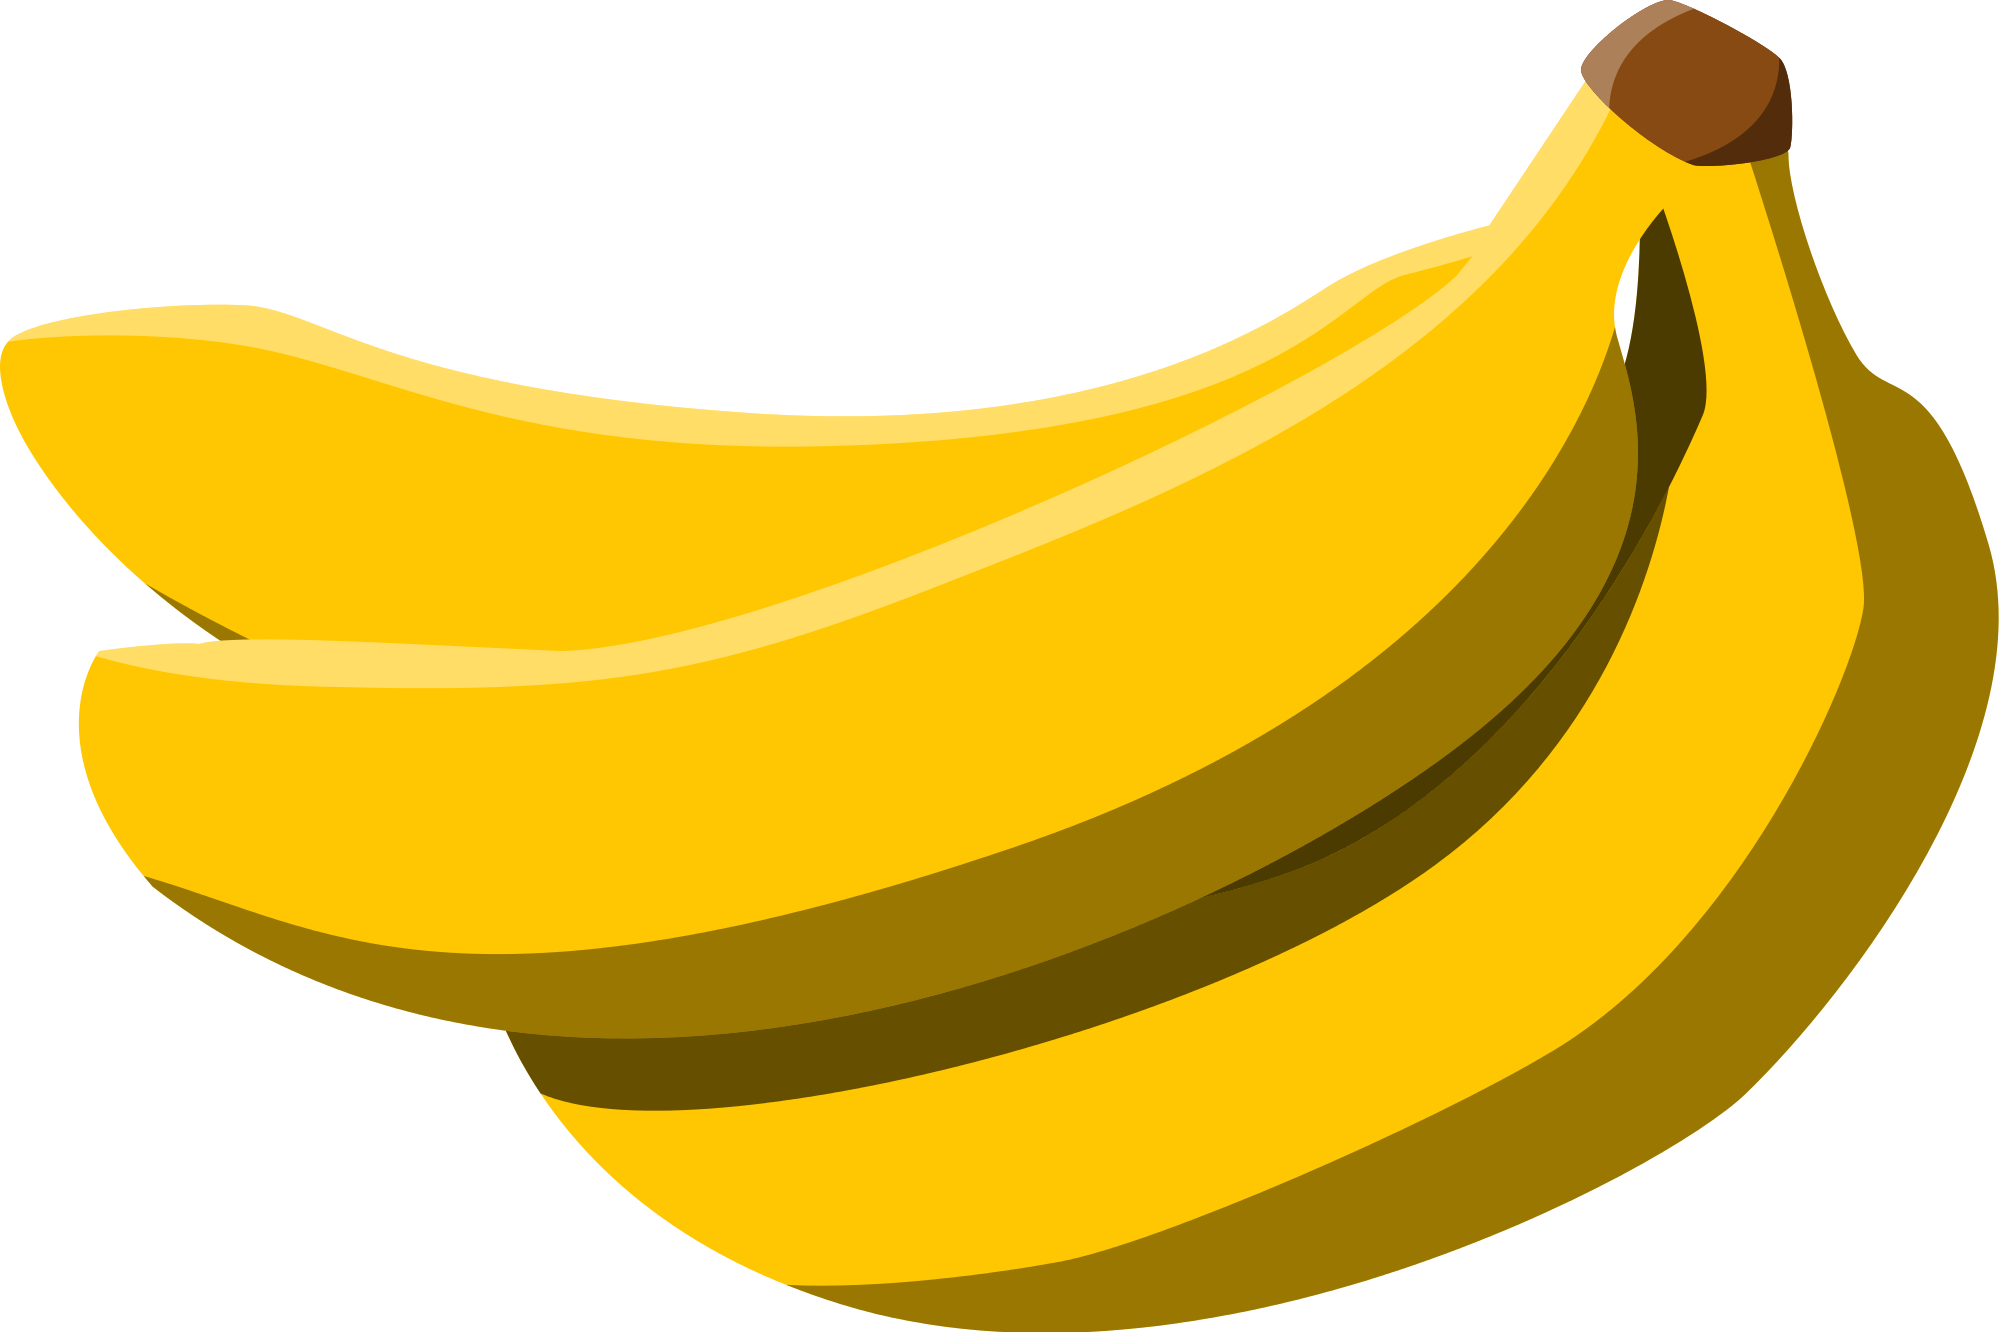 jpg library stock Bananas vector. File svg wikimedia commons